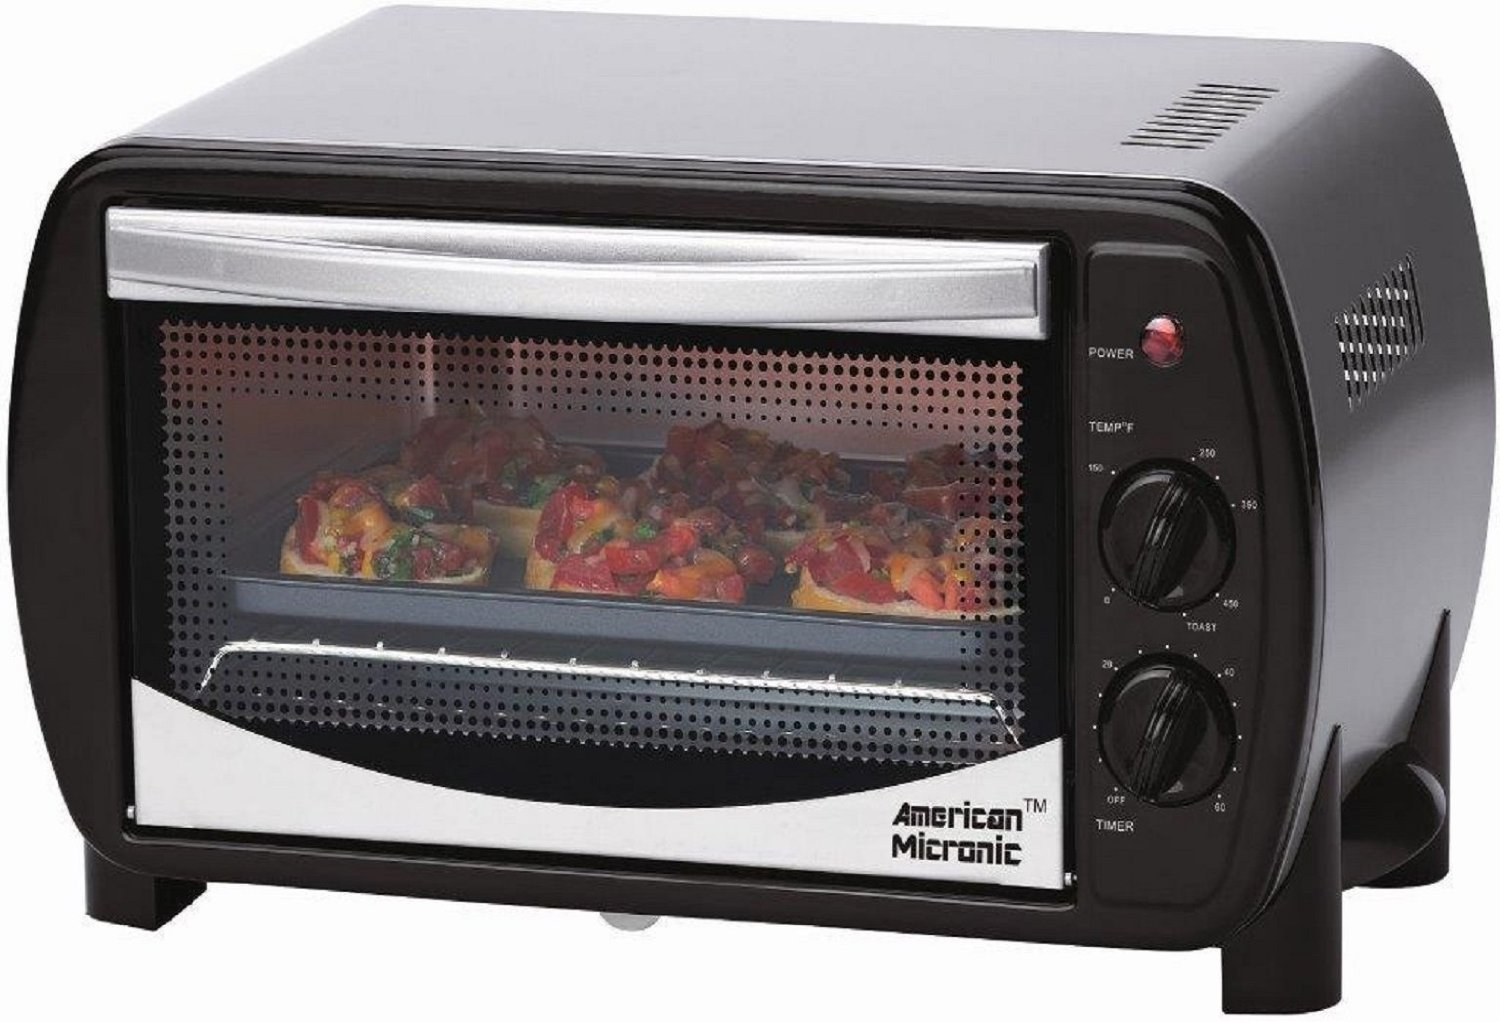 American Micronic 14 Liters Oven Toaster Griller Otg